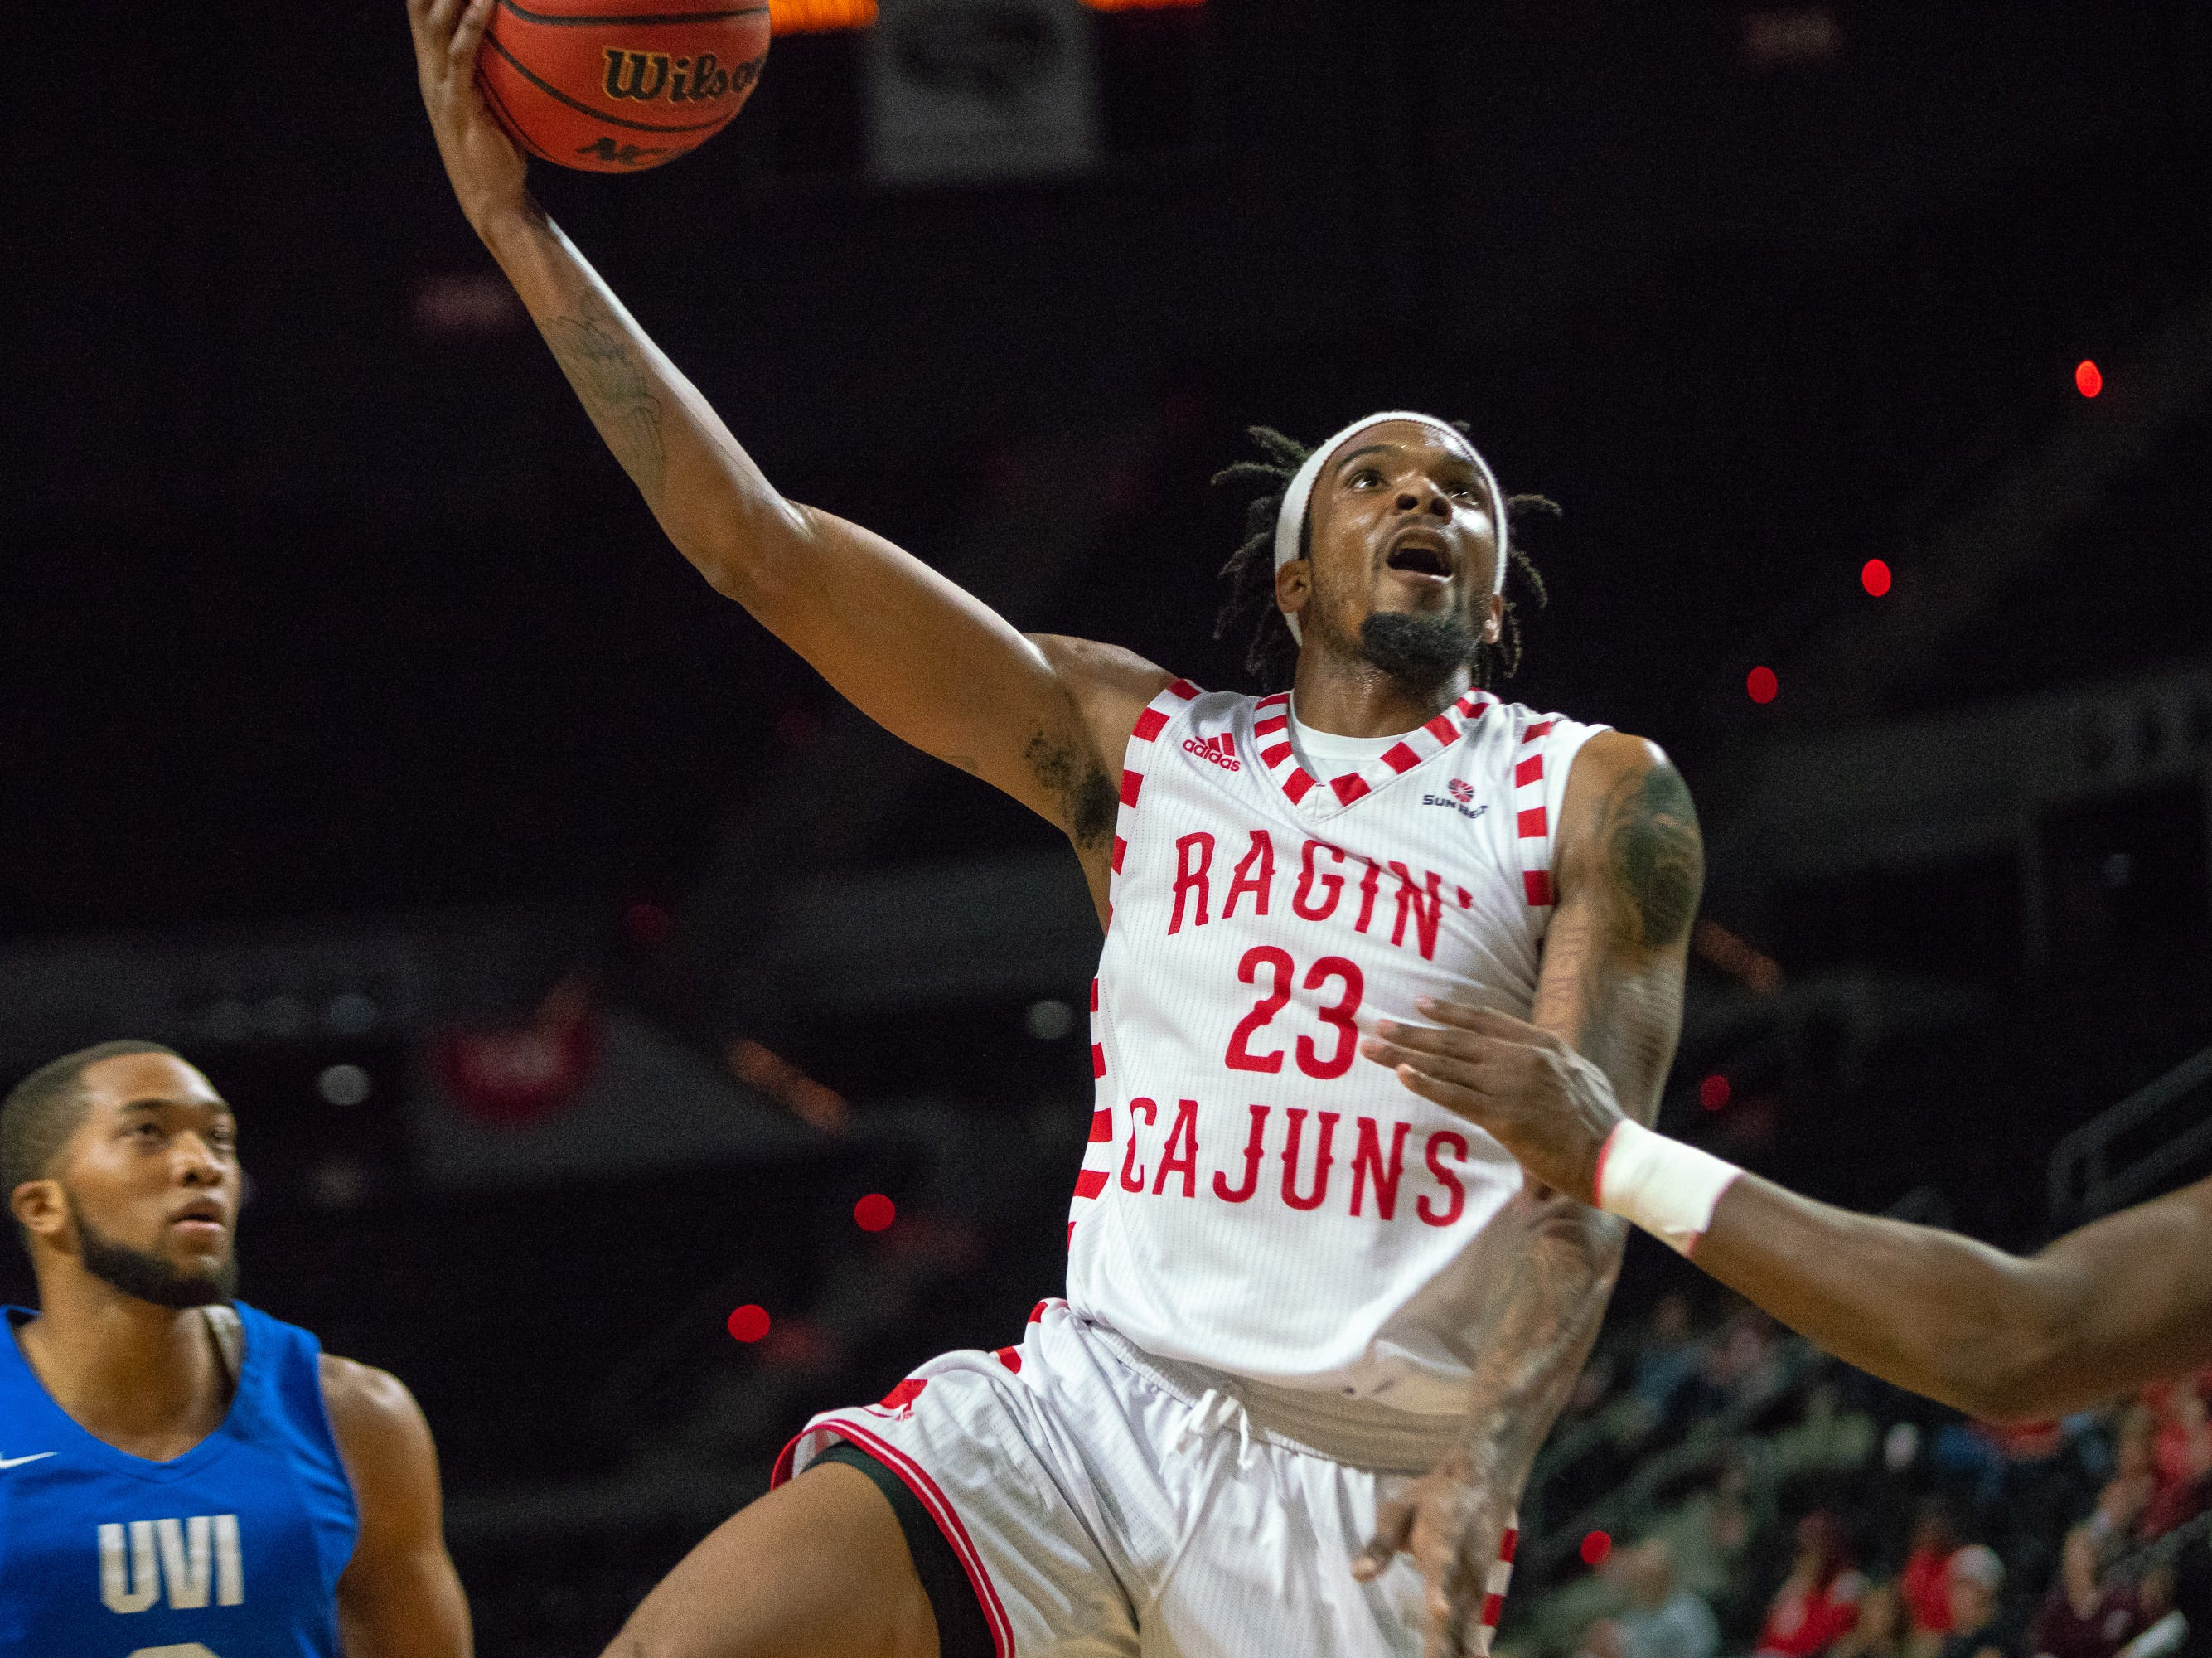 UL's Jakeenan Gant goes up to the goal for a layup as the Ragin' Cajuns take on the University of the Virgin Islands Buccaneers at the Cajundome on Nov. 6, 2018.